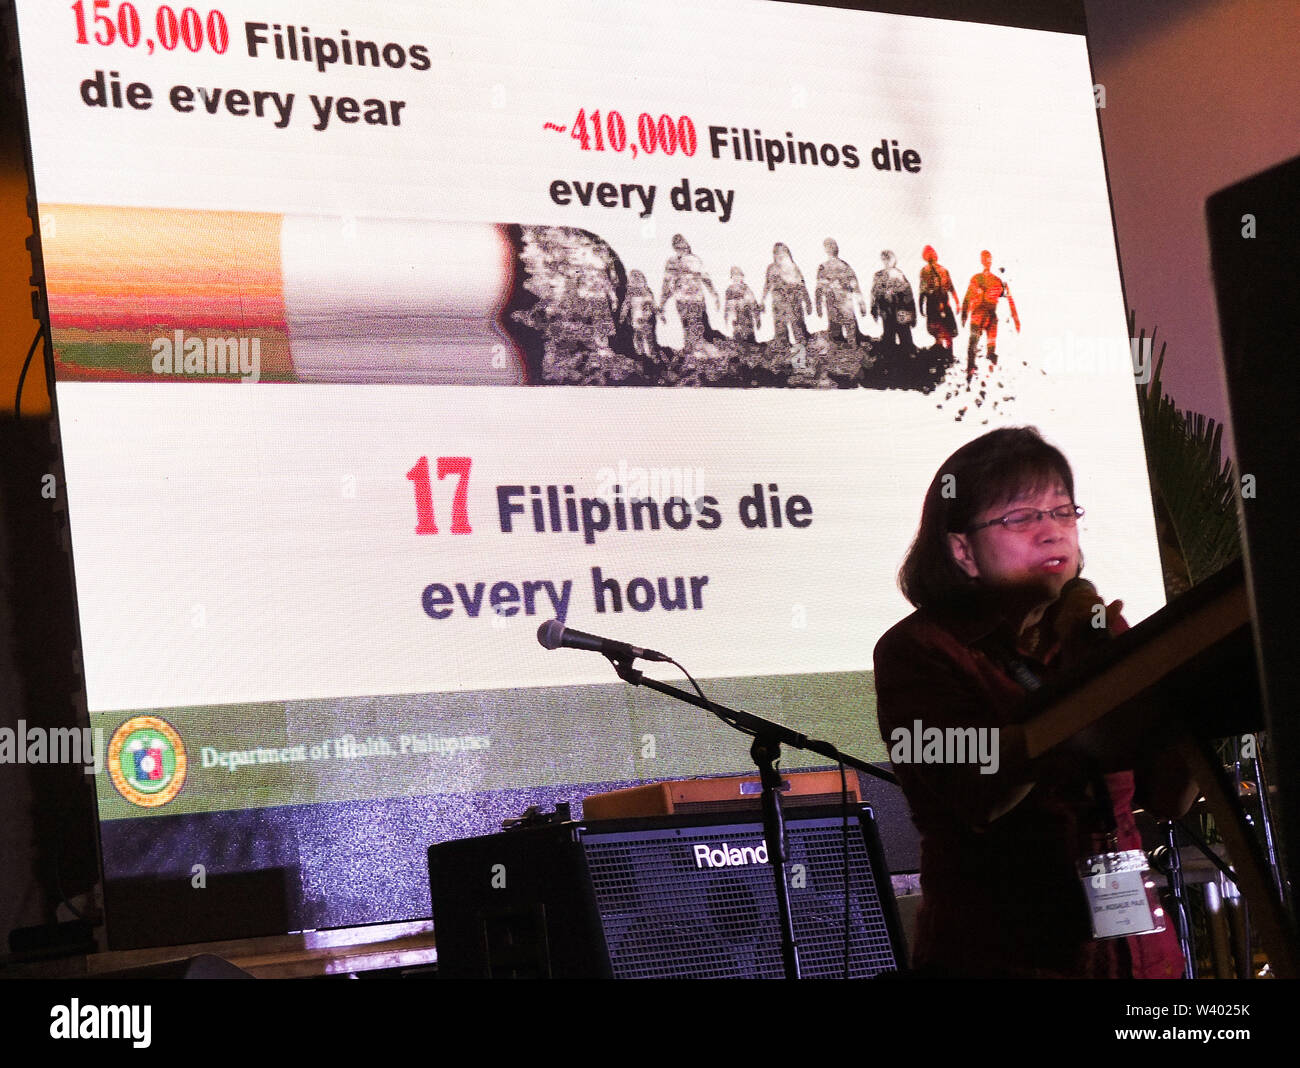 Manila, Philippines. 1st Jan, 2019. Dr. Rosalie Paje, Deputy Director of DOH Health Emergency Management Bureau speaks during the 2nd Anniversary of Smoke-Free Philippines Forum at the Manila Hotel.The 2nd Anniversary of Executive Order 26 by the Philippine Government, providing for the establishments of smoke-free environments in public and enclosed places, to protect and promote the right to health of the Filipino people and instil health consciousness among them. Credit: Josefiel Rivera/SOPA Images/ZUMA Wire/Alamy Live News - Stock Image